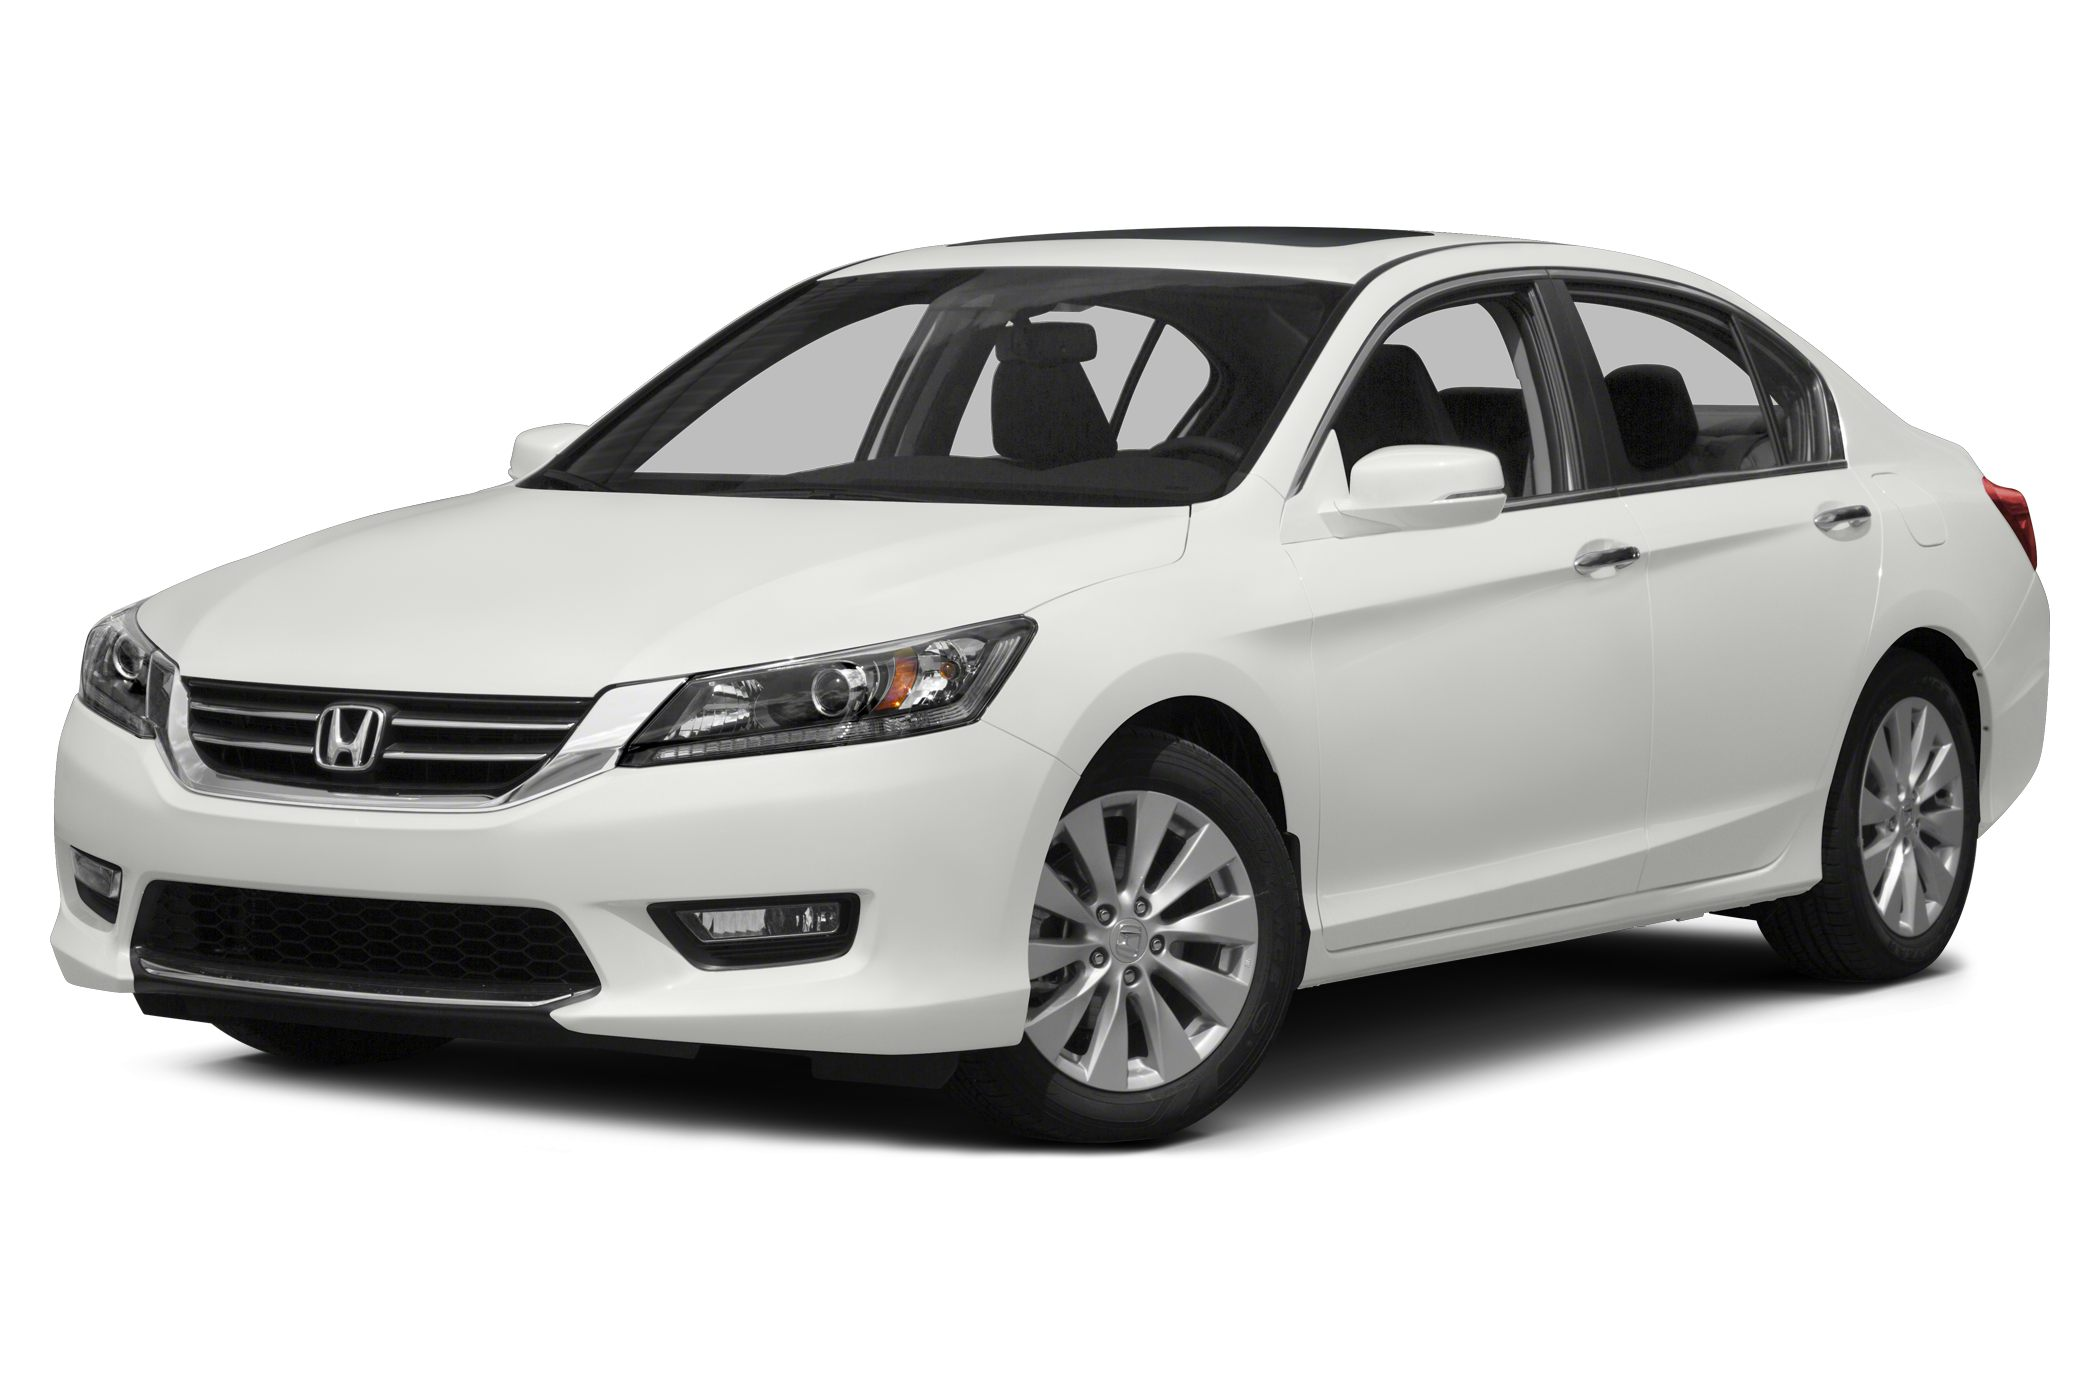 2013 Honda Accord EX-L The car youve always wanted Discerning drivers will appreciate the 2013 H